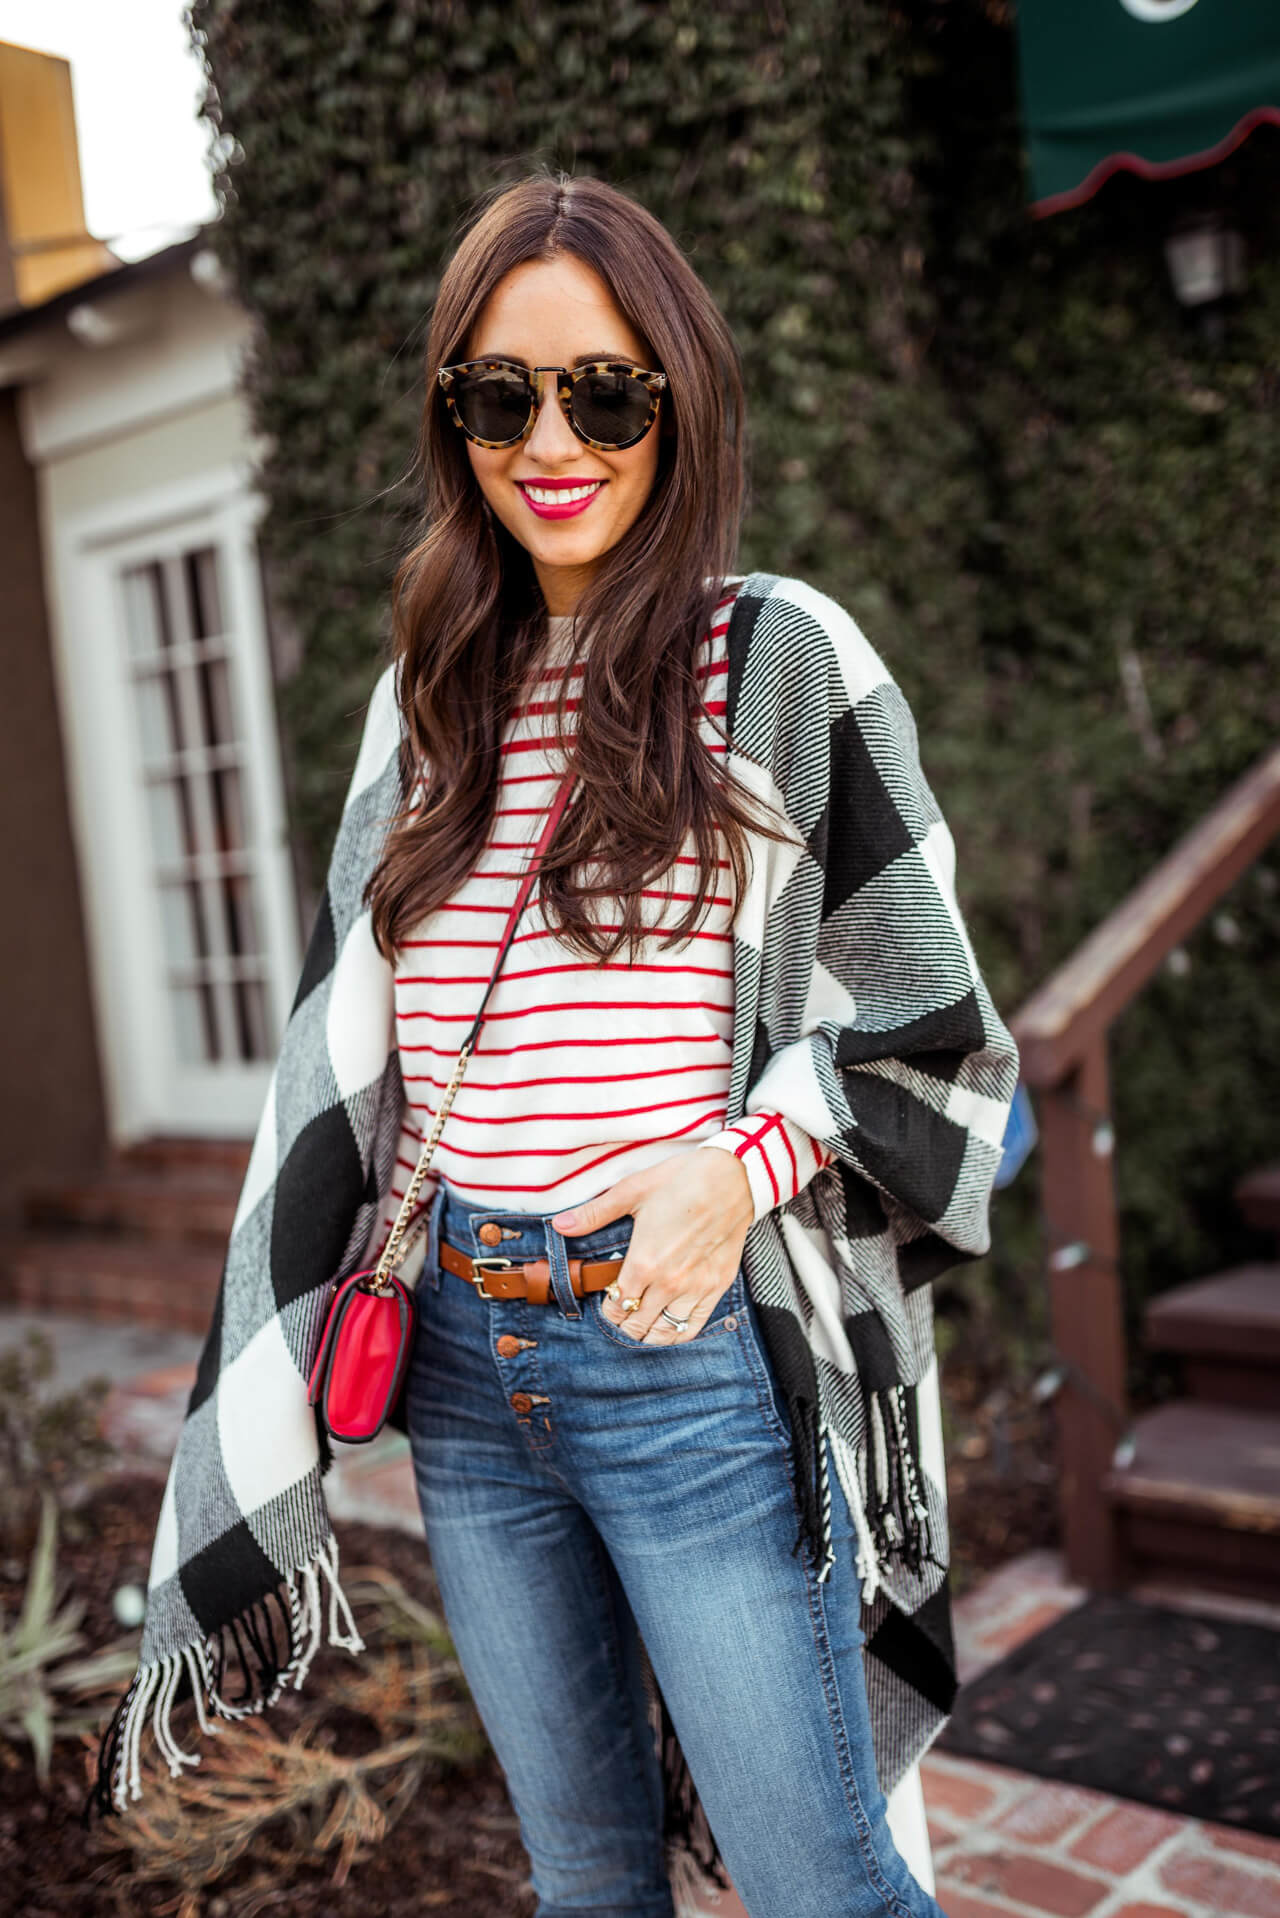 sharing some must denim for your closet - M Loves M @marmar